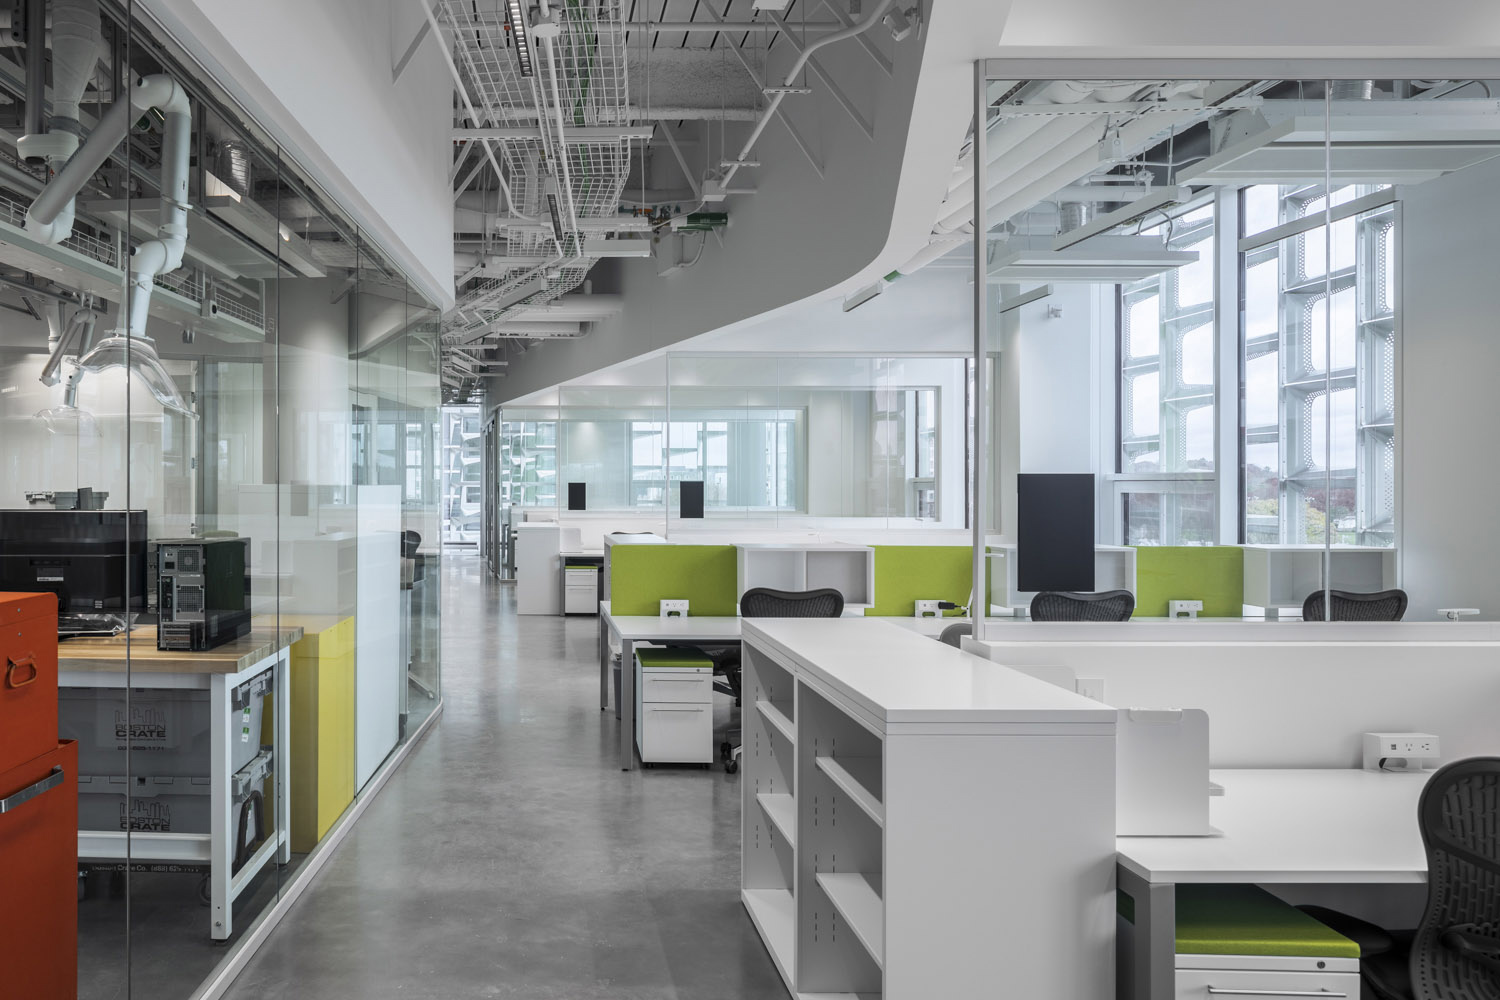 Modular, flexible laboratory environments and smart zoning of highly ventilated zones from dry space, ensure the future adaptability and continued use of laboratory space for decades to come. Brad Feinknopf